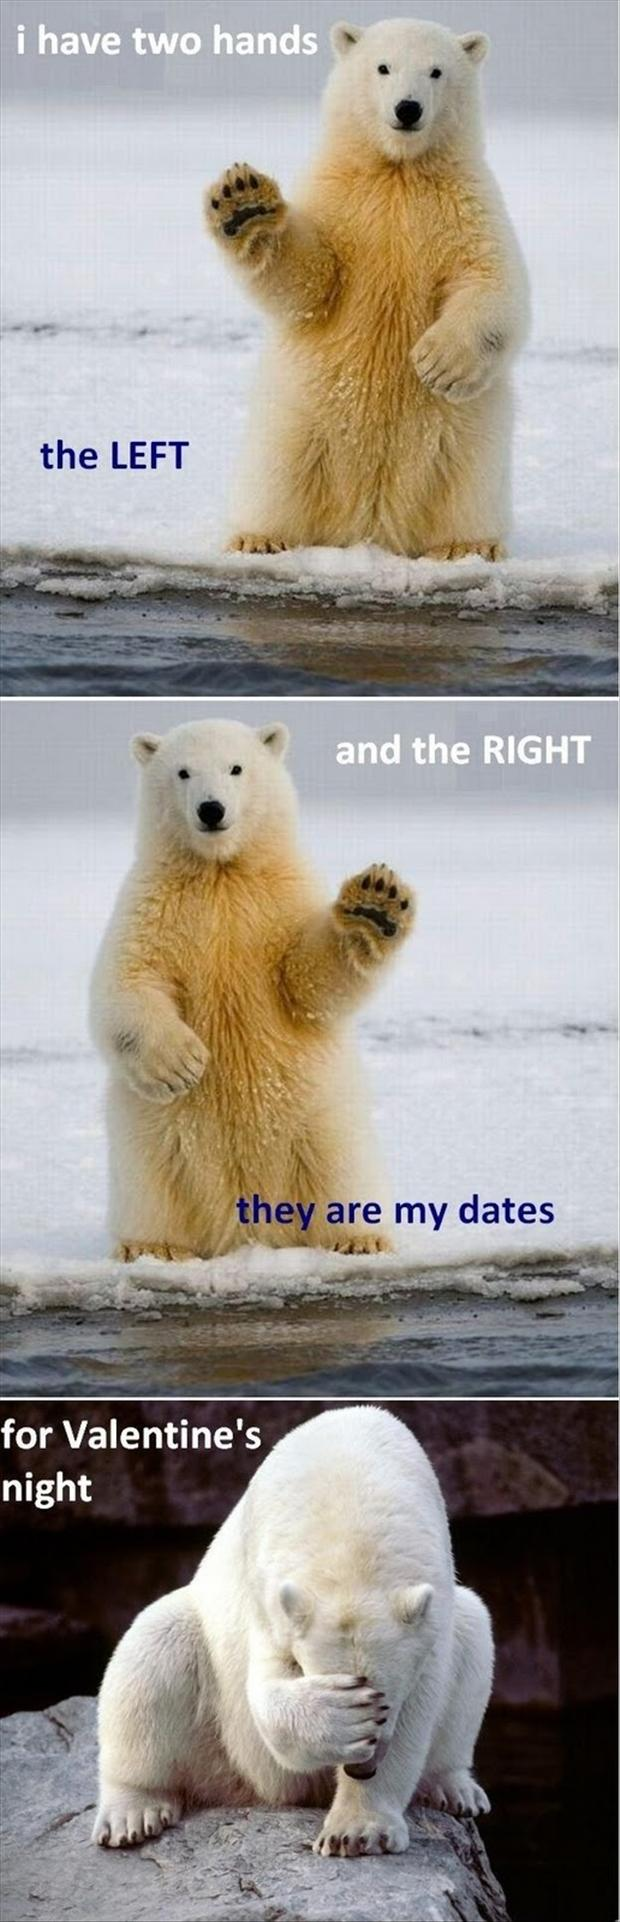 Funny Valentines Day Pictures, Polar Bears